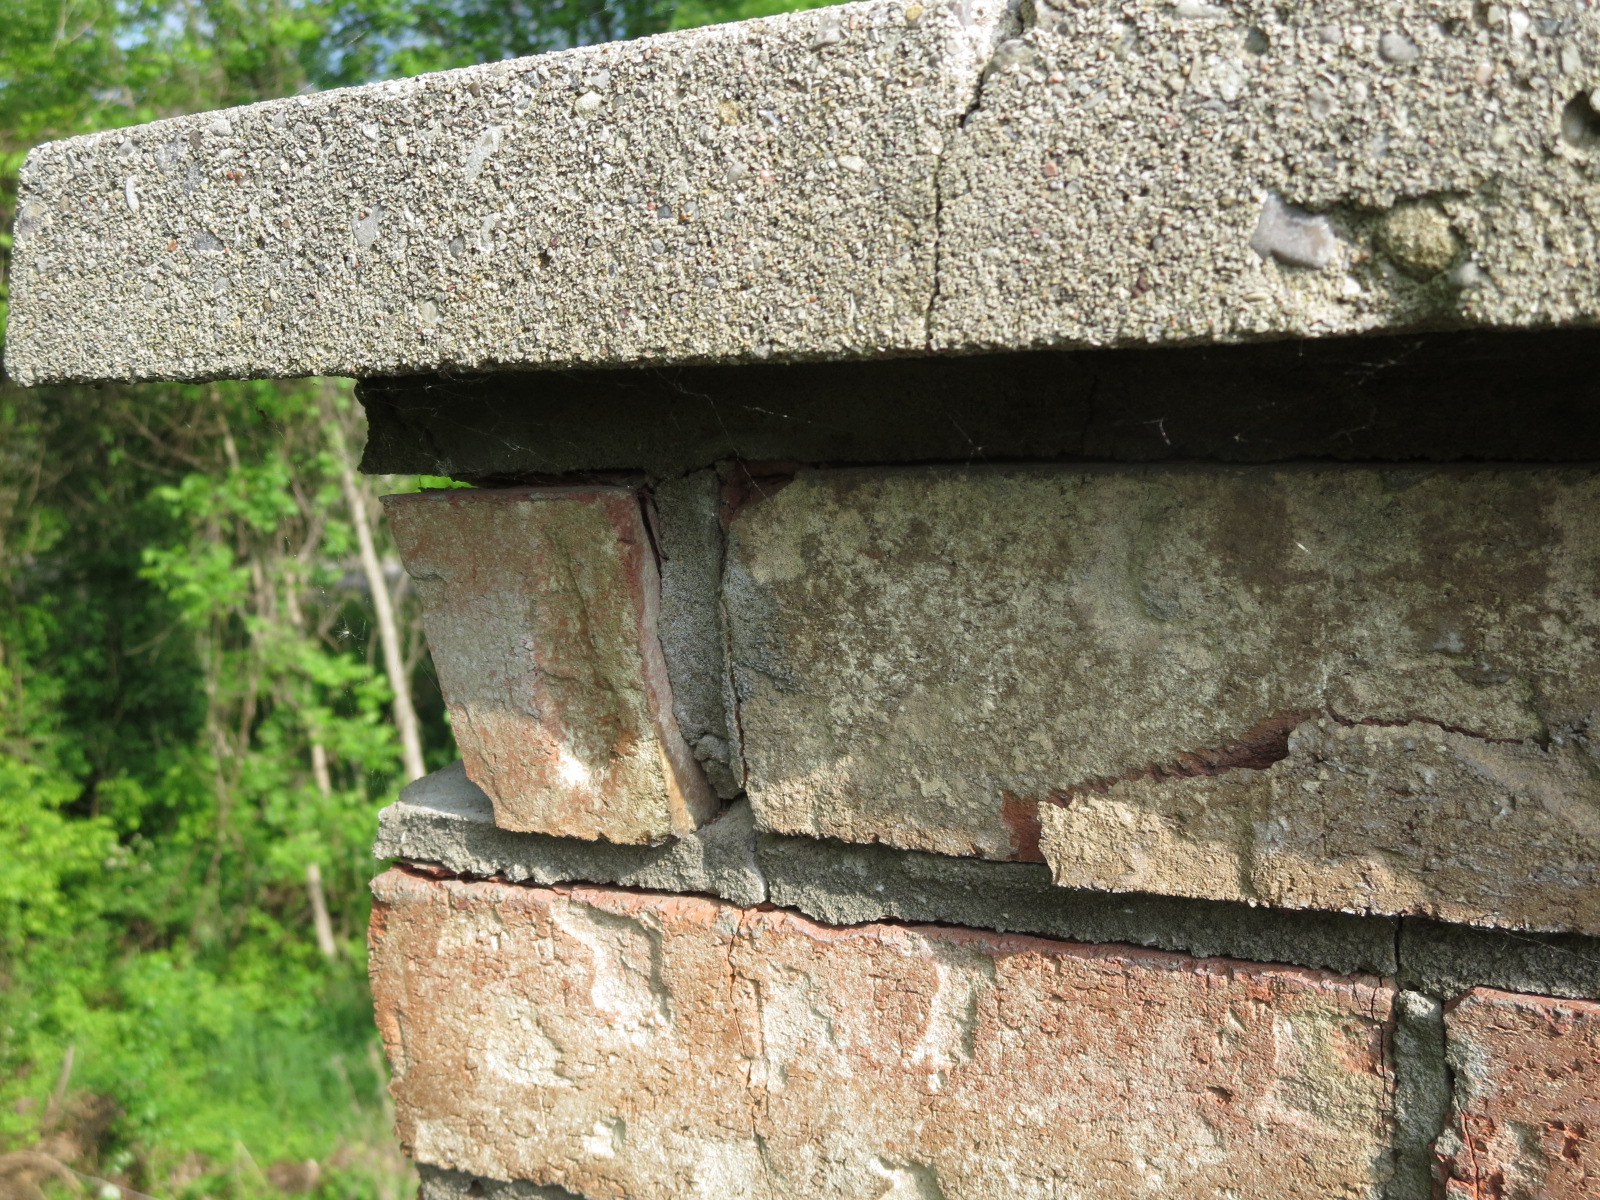 Chimney Cap is cracked and brick mortar loose with spalling brick.